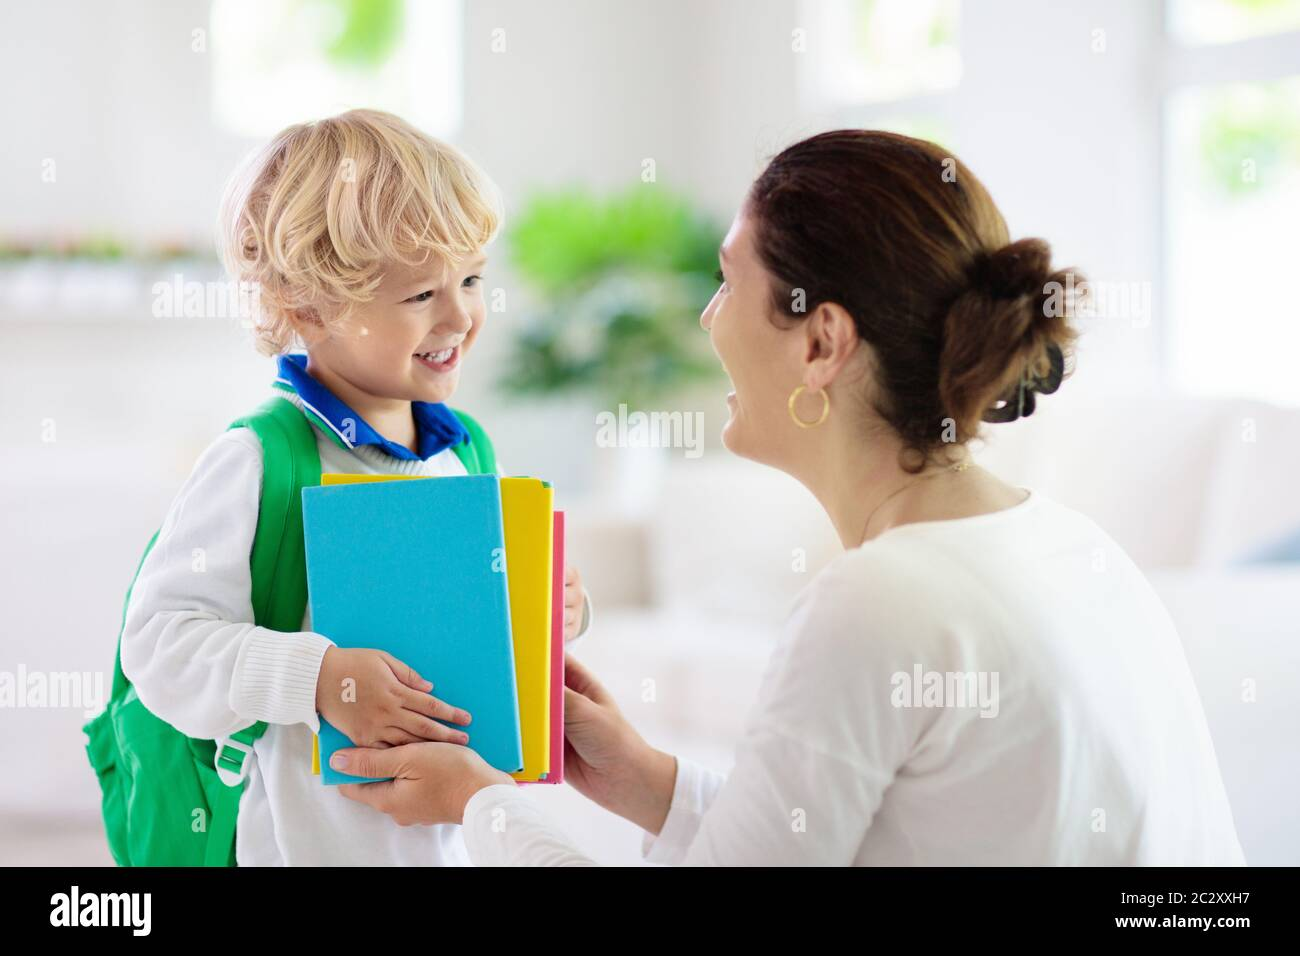 Child going back to school. Mother and kid getting ready for first school  day after vacation. Little boy and mom going to kindergarten or preschool.  S Stock Photo - Alamy